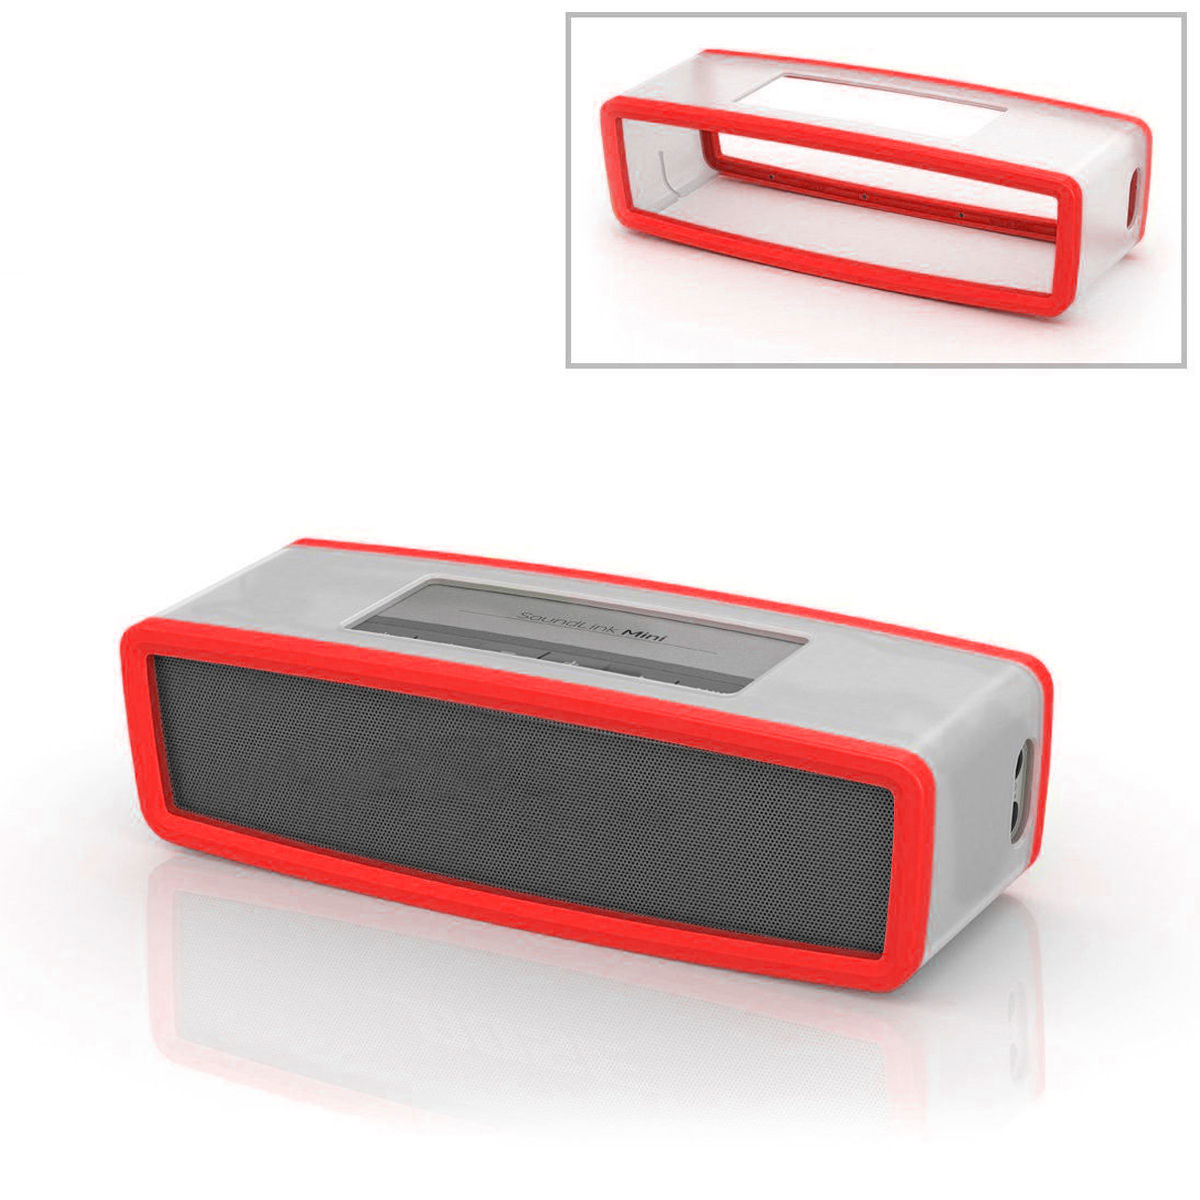 Bluetooth Box Soft Cover Box Silicone Carry Case Bag For Bose Soundlink